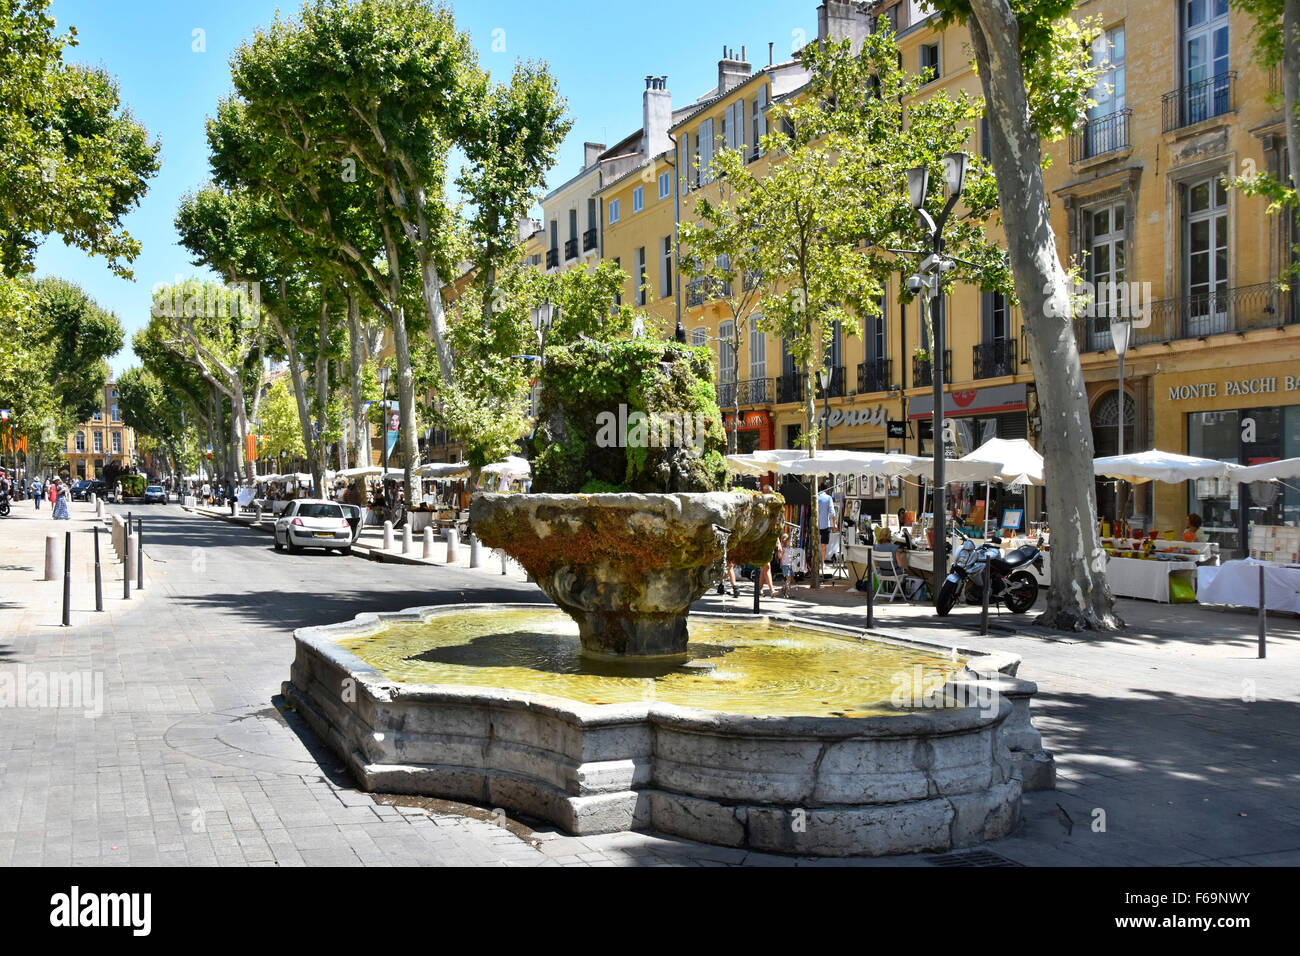 Aix en Provence South of France tree lined Cours Mirabeau boulevard and Fontaine des Neuf-Canons Sunday street market - Stock Image